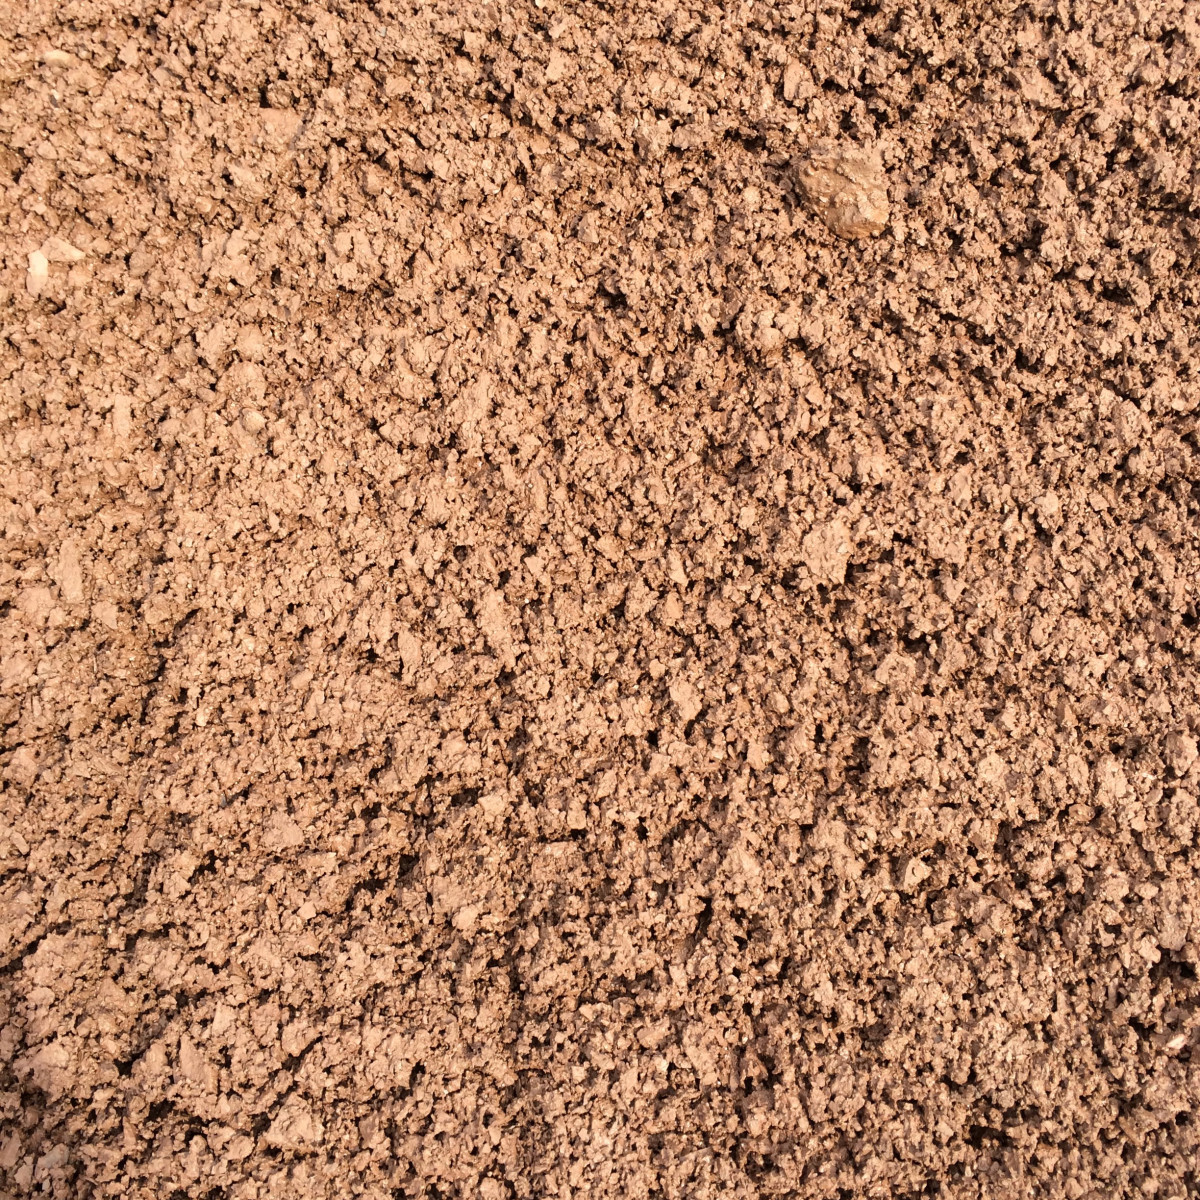 Red Crushed Granite Stone : Crushed stone river more in bucks and montgomery